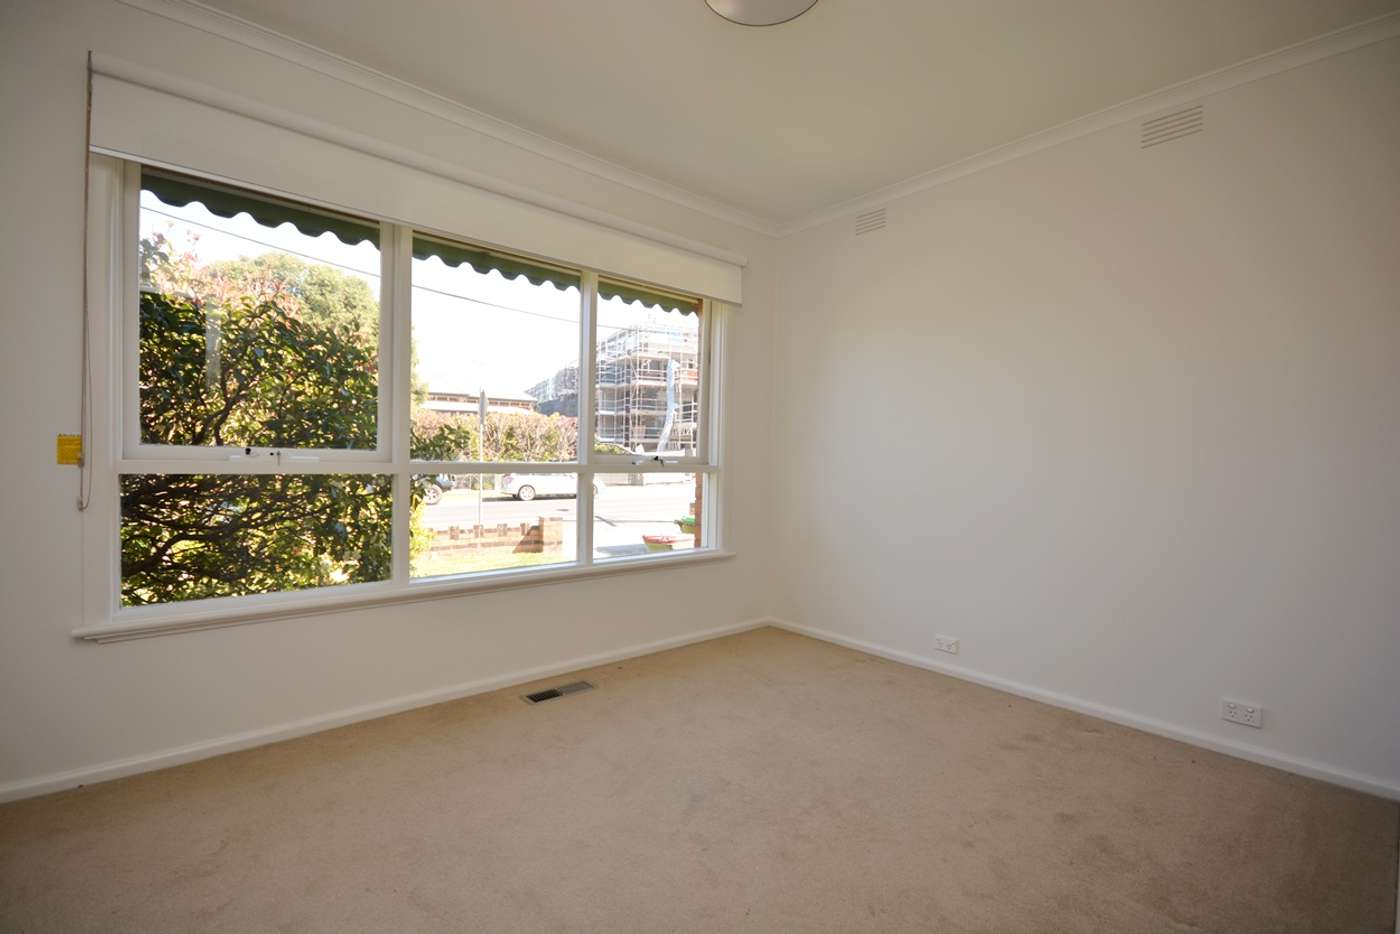 Sixth view of Homely unit listing, 1/52 Orrong Road, Elsternwick VIC 3185